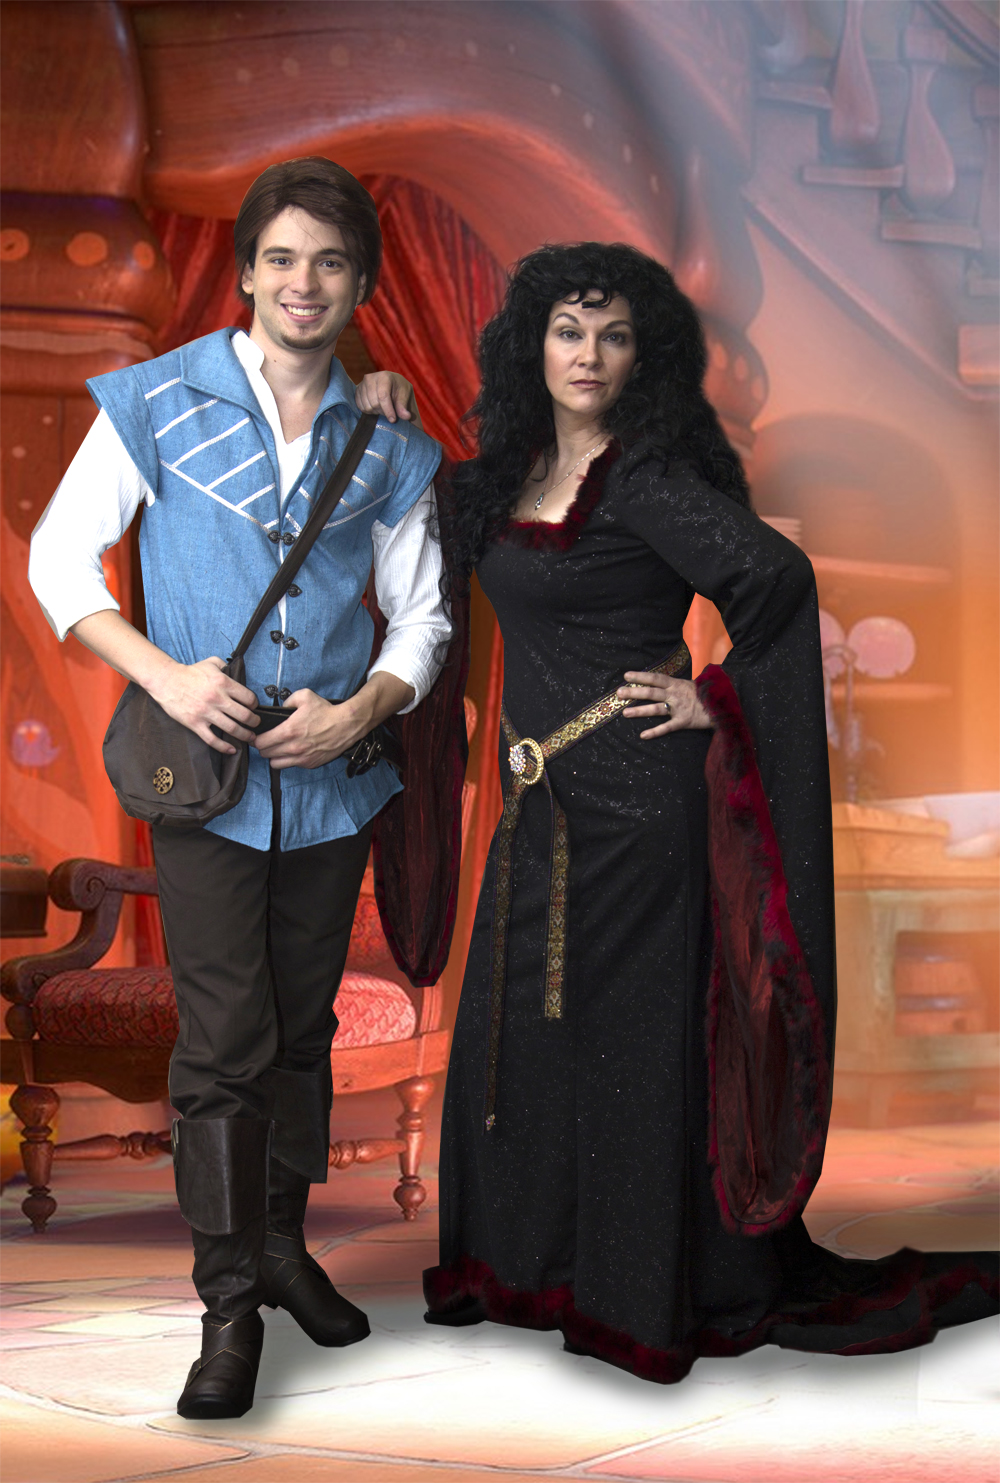 Mother Gothel Fairytale Character